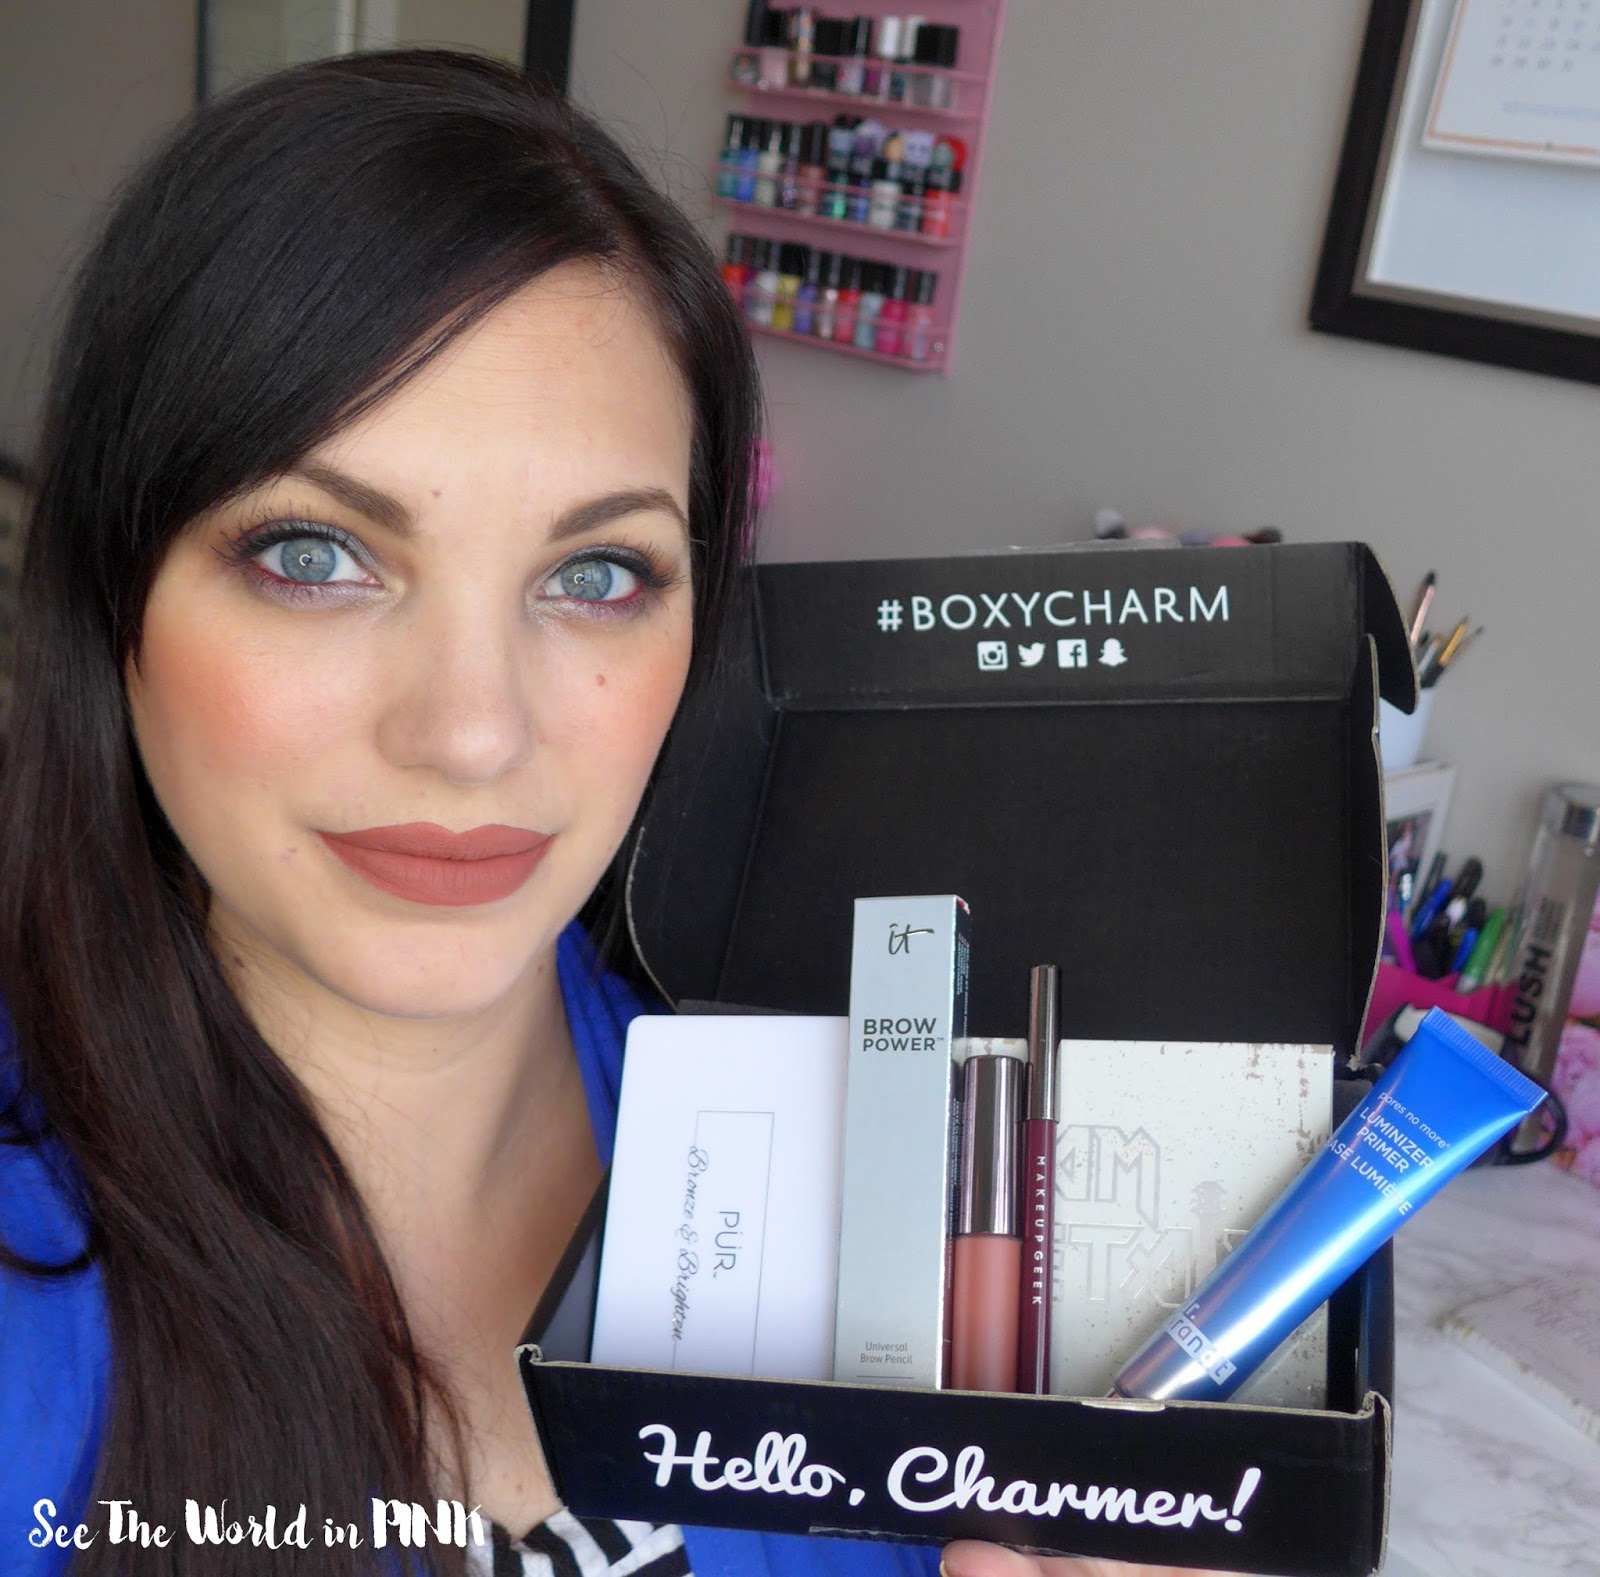 January 2018 Boxycharm - Unboxing, Swatches, Full Makeup Try-on and Review!